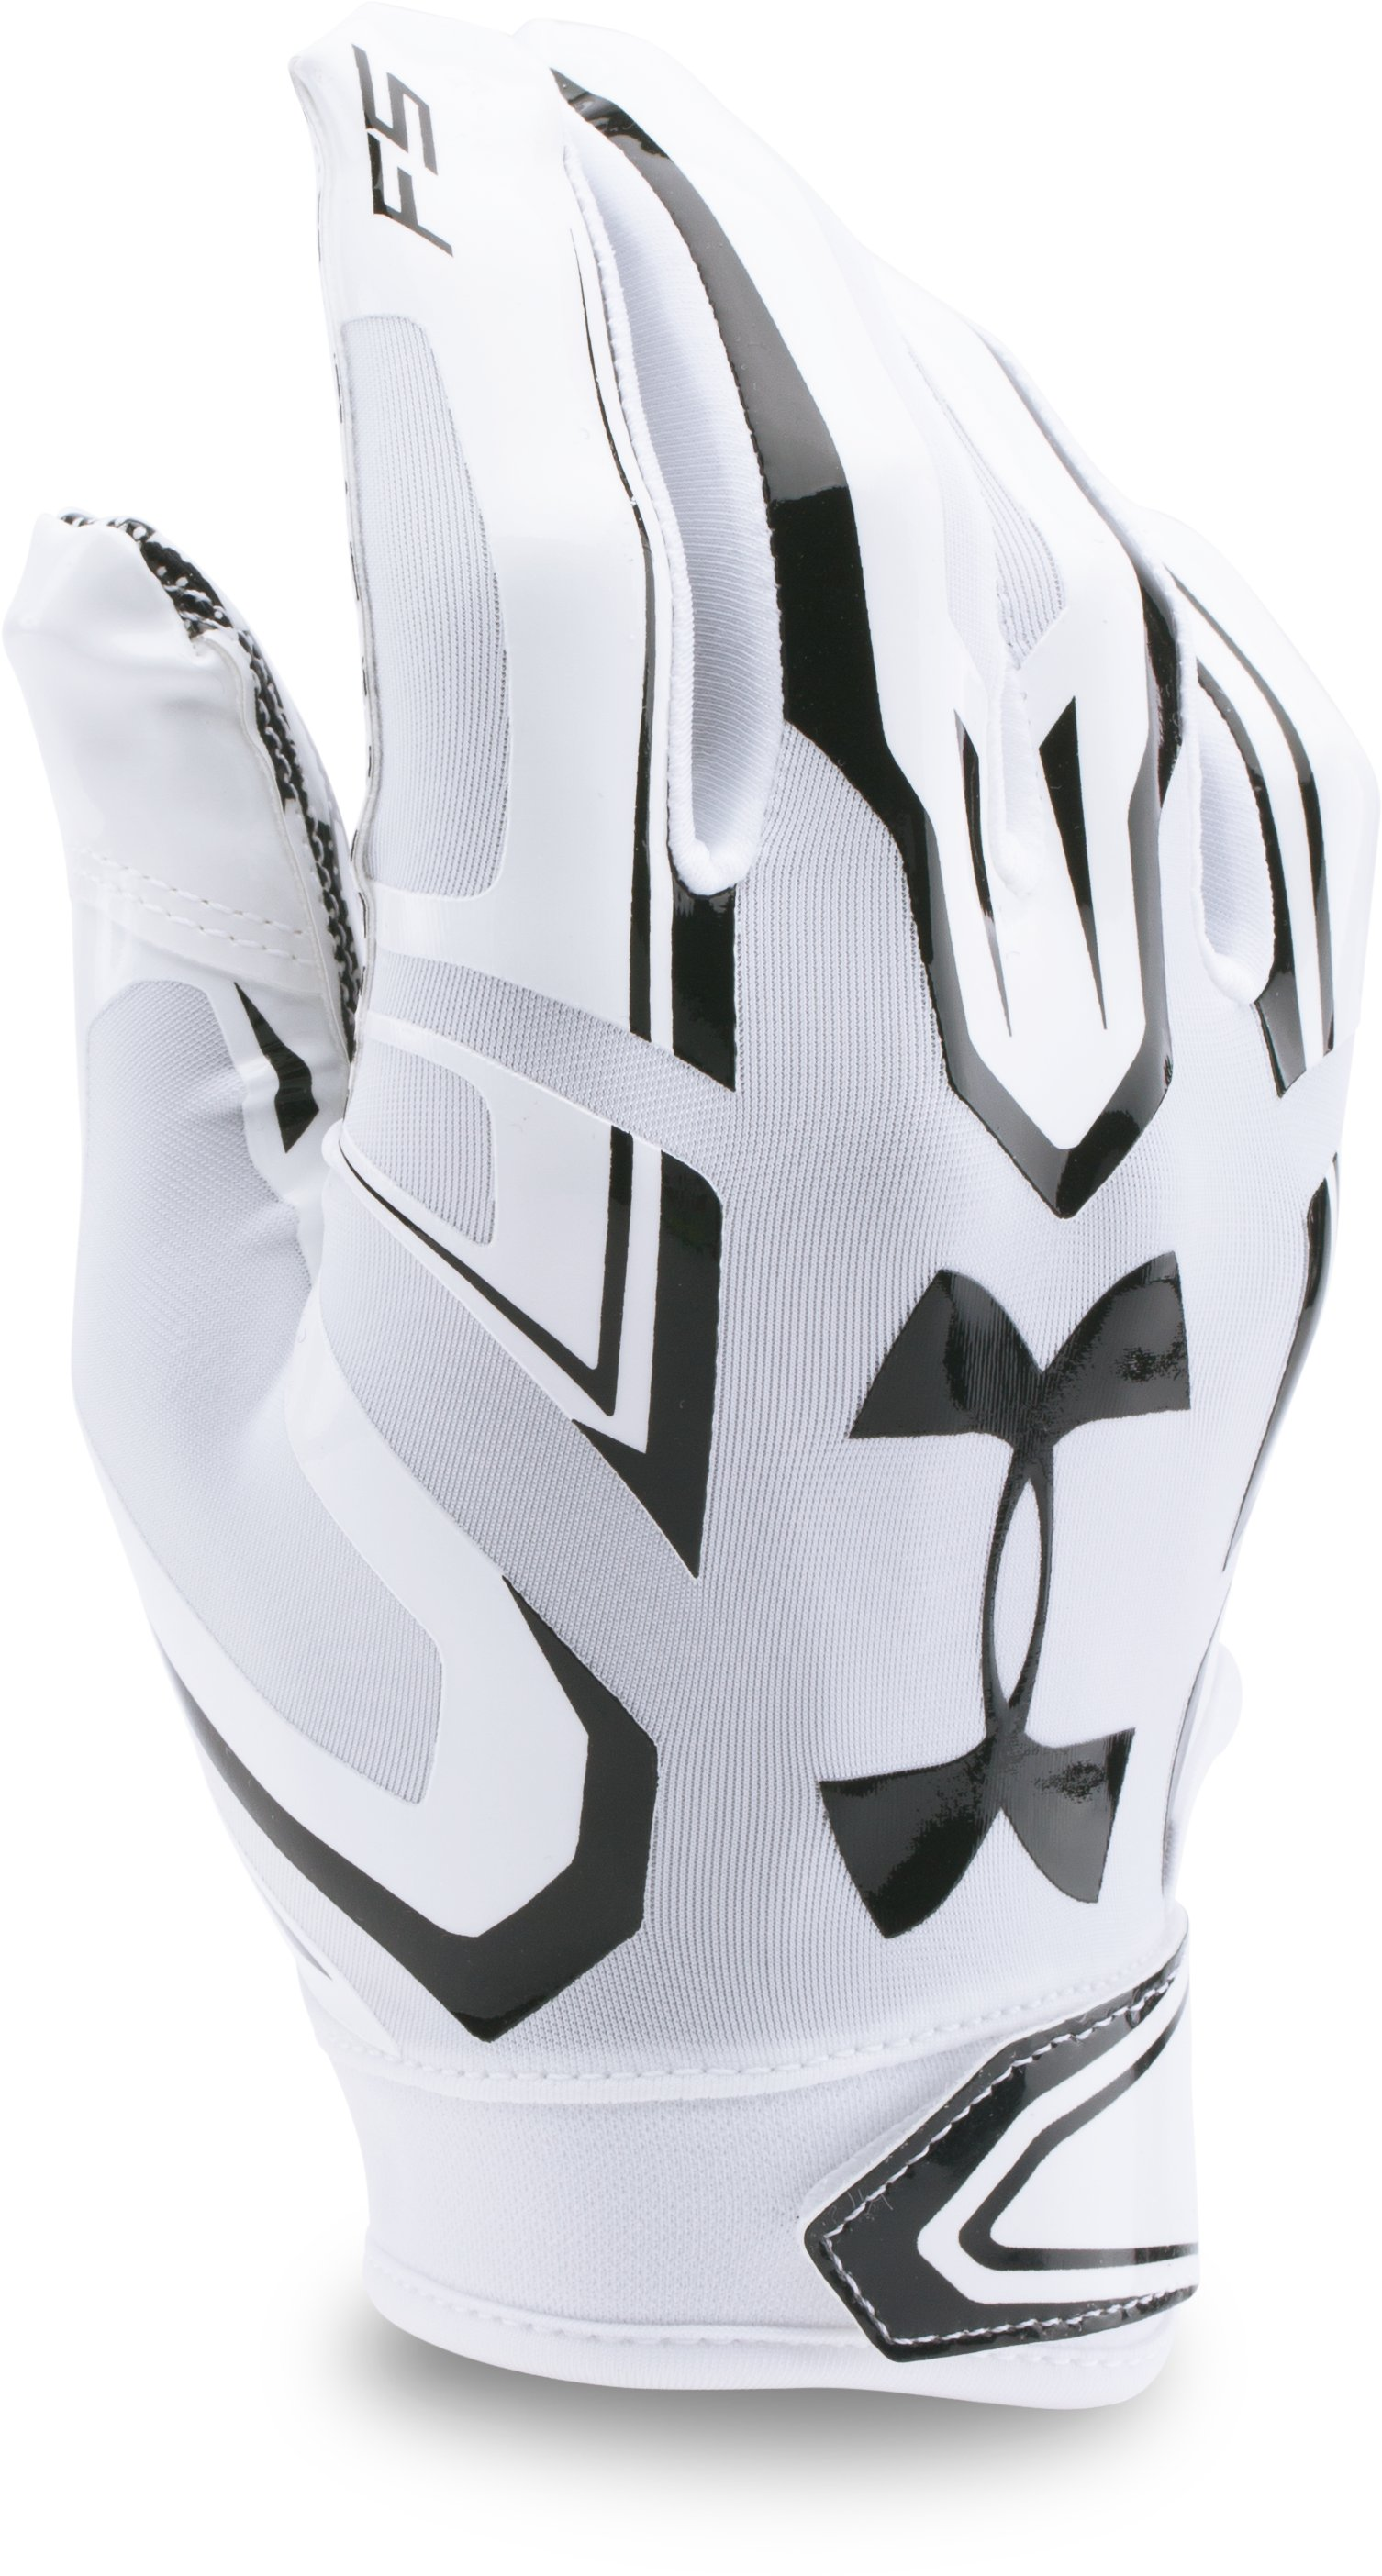 Boys' Pee Wee UA F5 Football Gloves, White, zoomed image